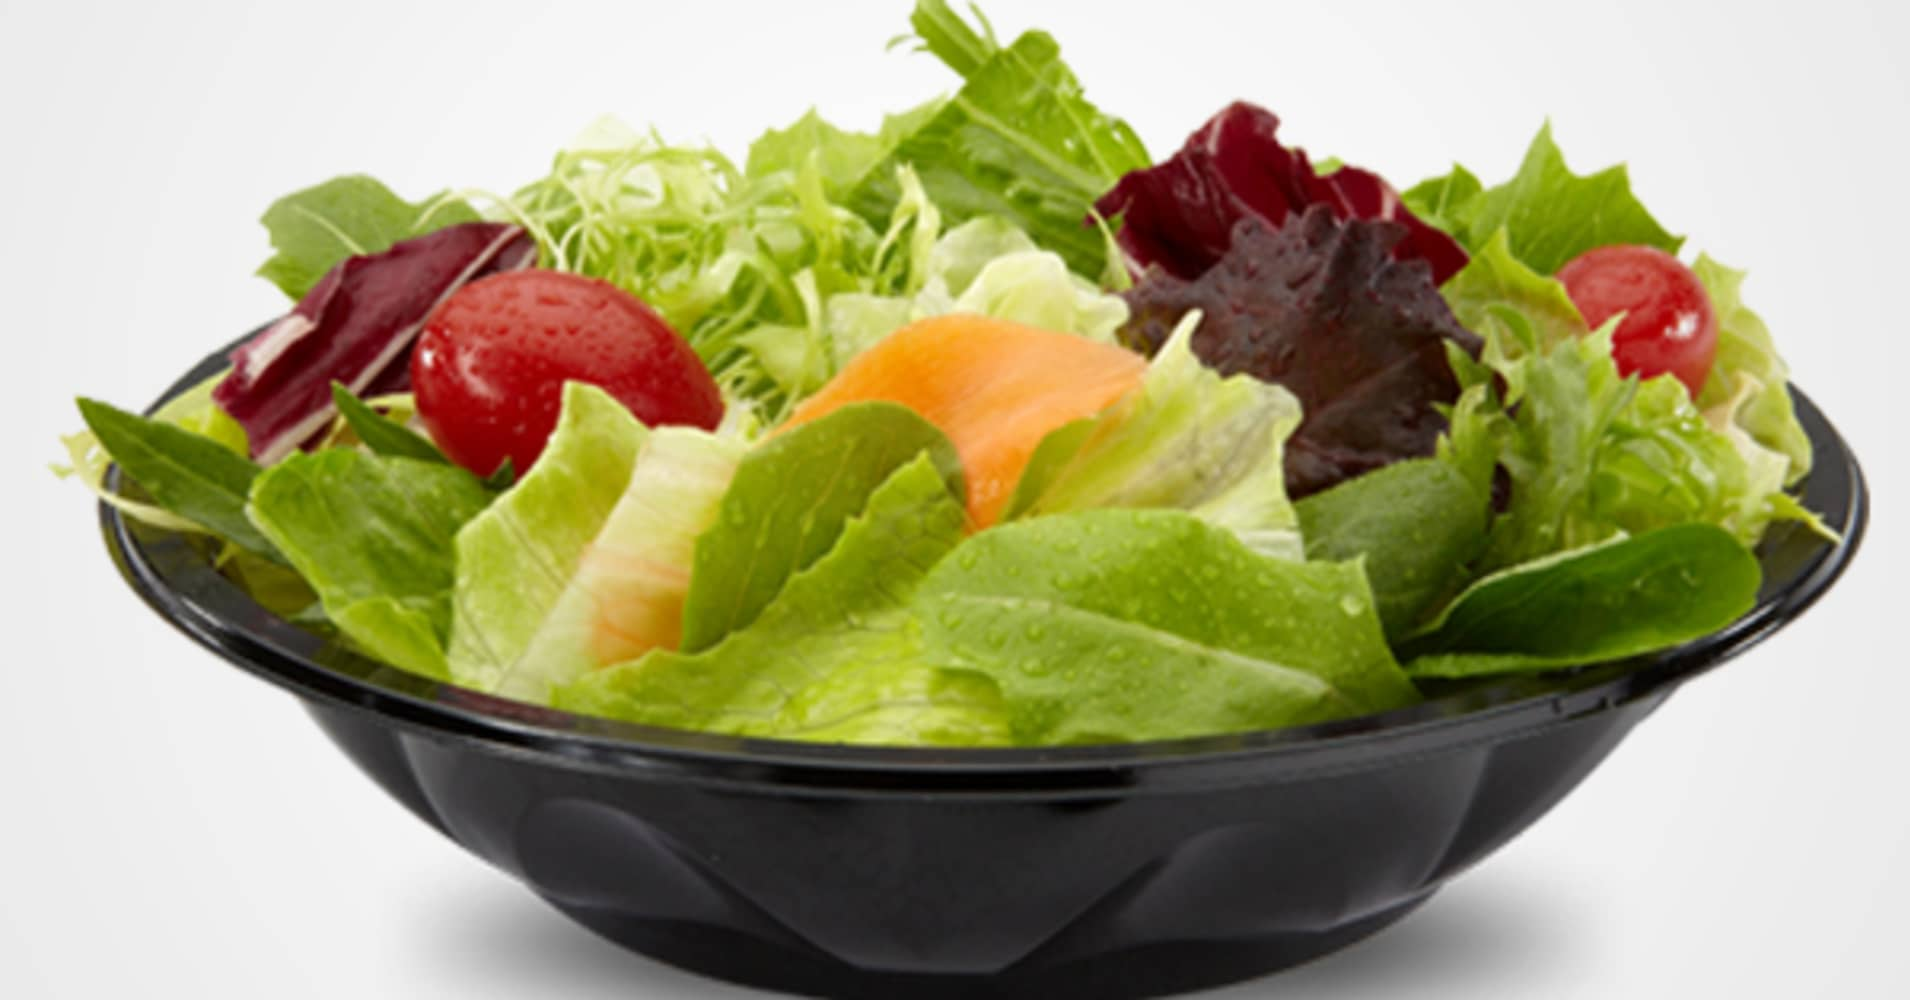 Image result for side salad mcdonalds